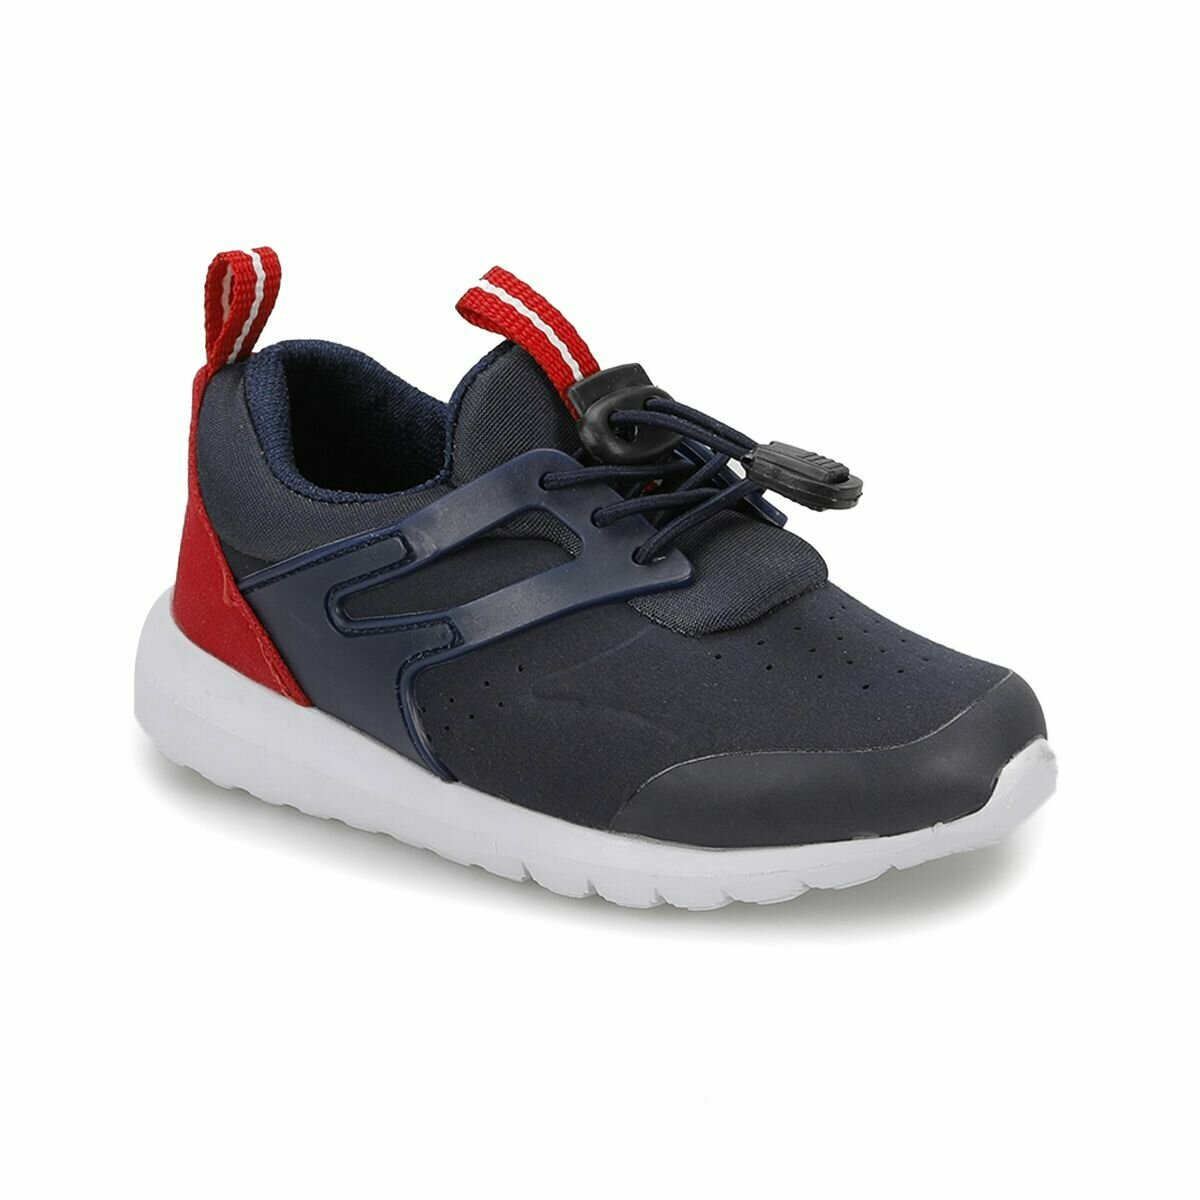 FLO ATUM Navy Blue Male Child Sneaker Shoes KINETIX